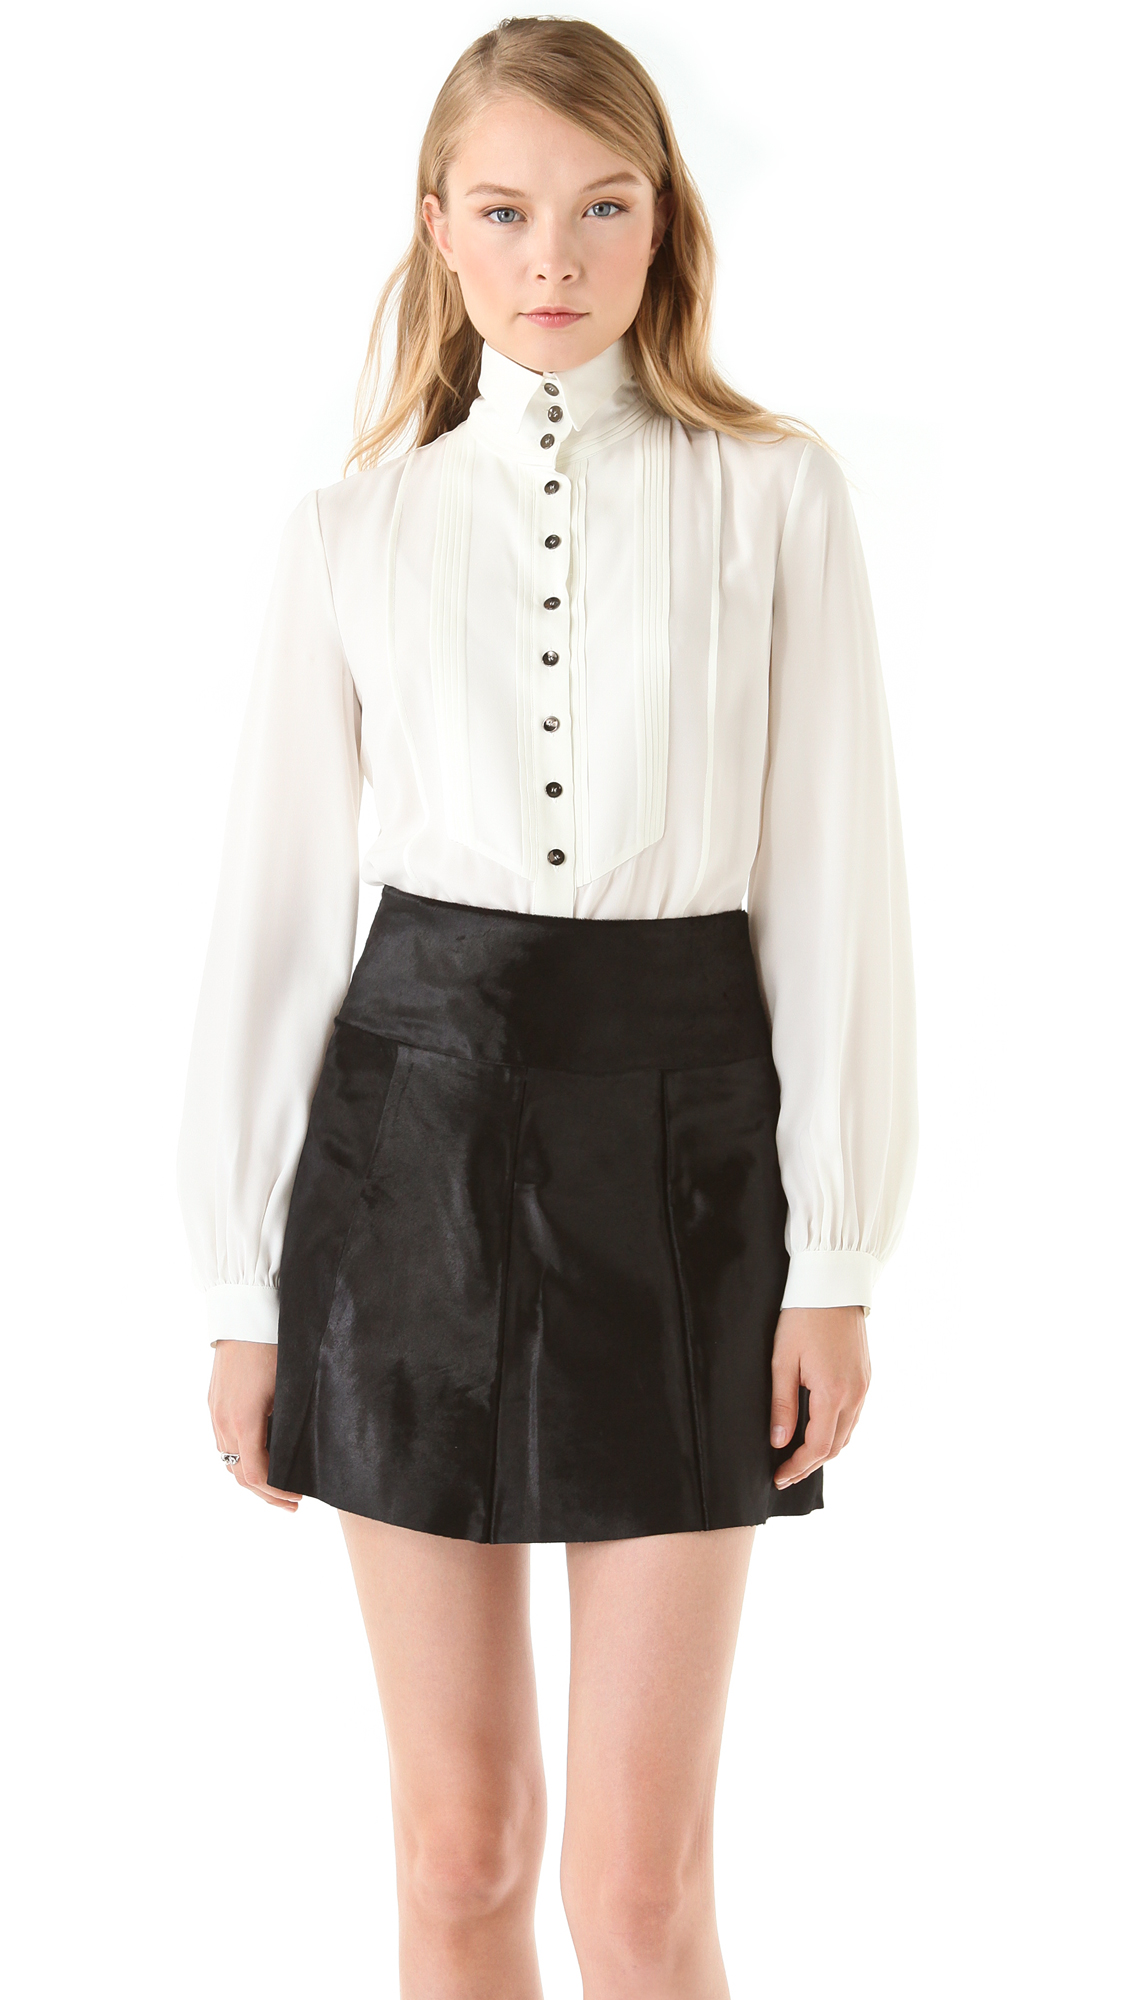 Women S White Collared Shirts Male Models Picture